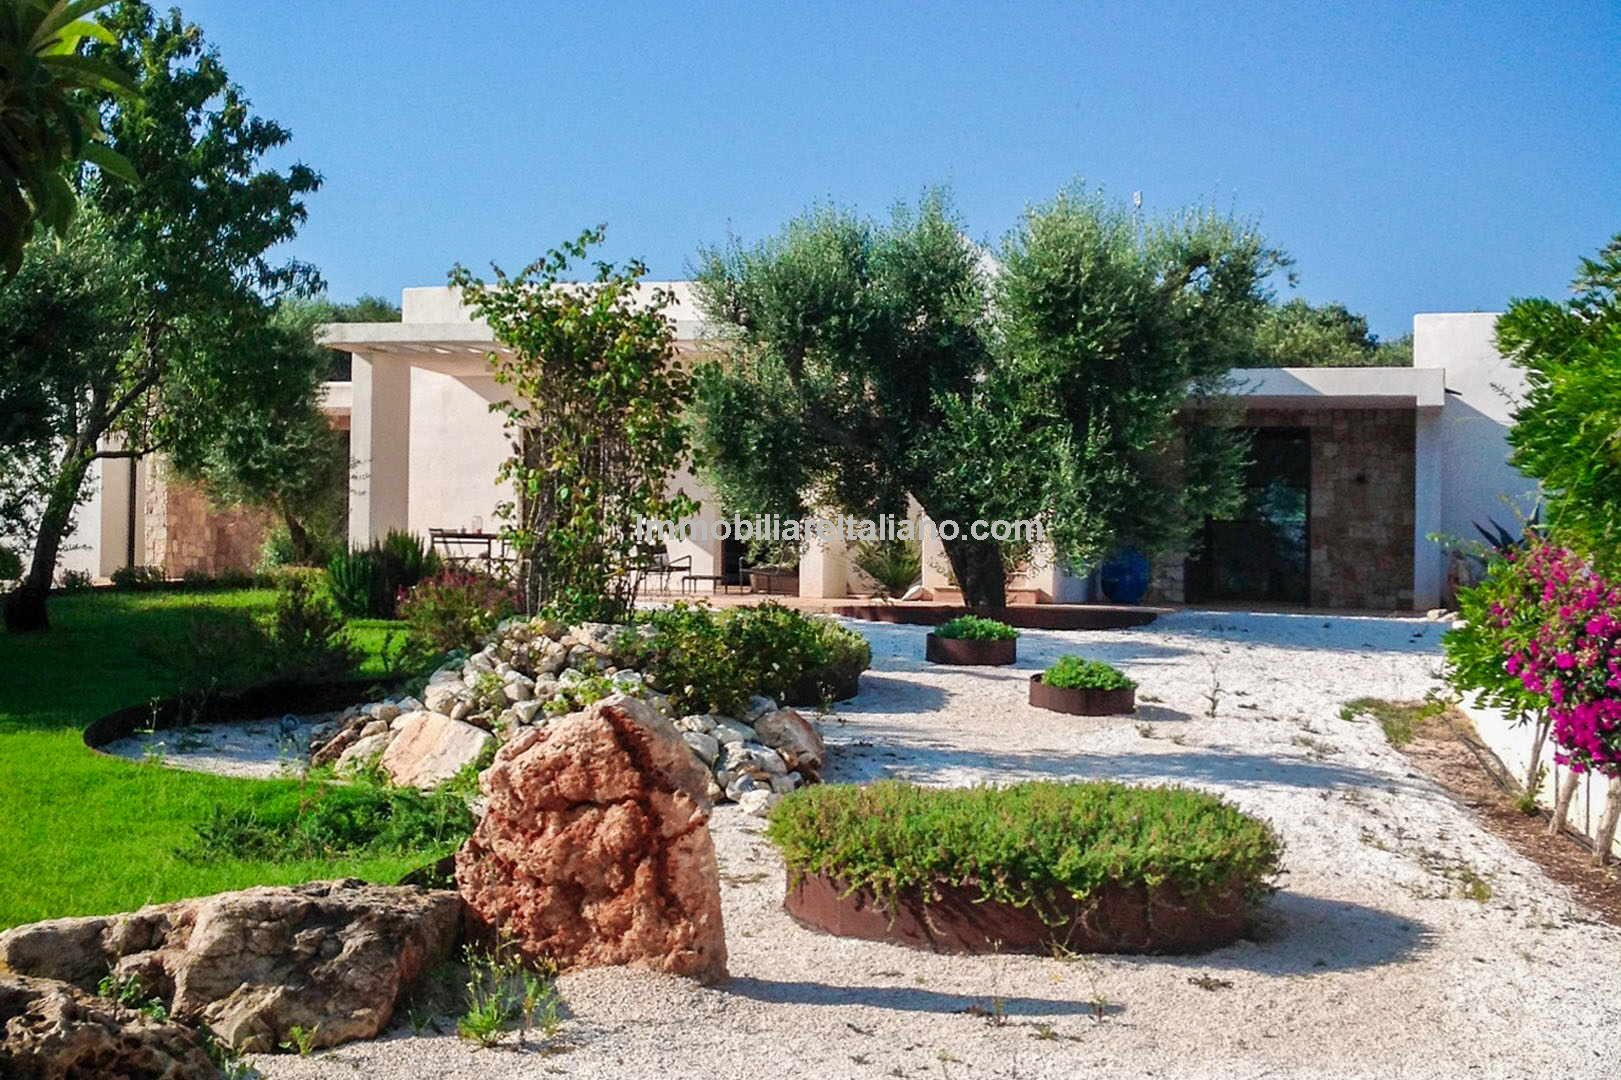 Seaview villa with trullo, guesthouse, garden, pool and olive grove